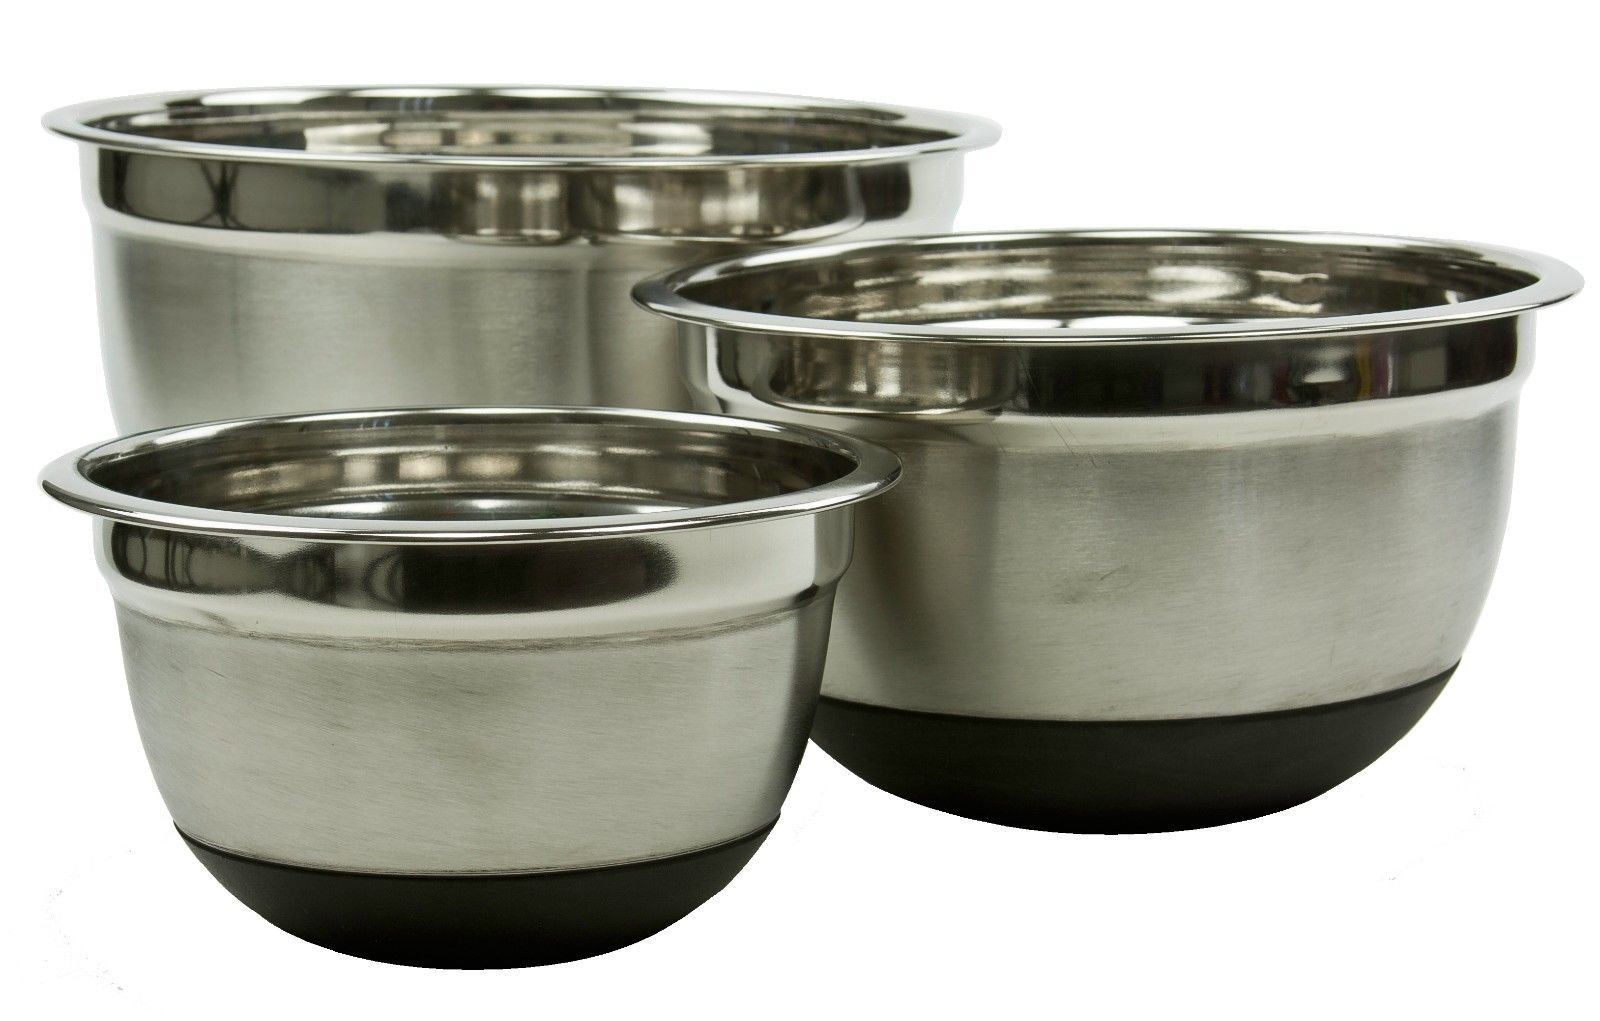 Stainless Steel Mixing Bowl Set W/ Silicone Bottoms 4 Pieces Nested Bowl Set